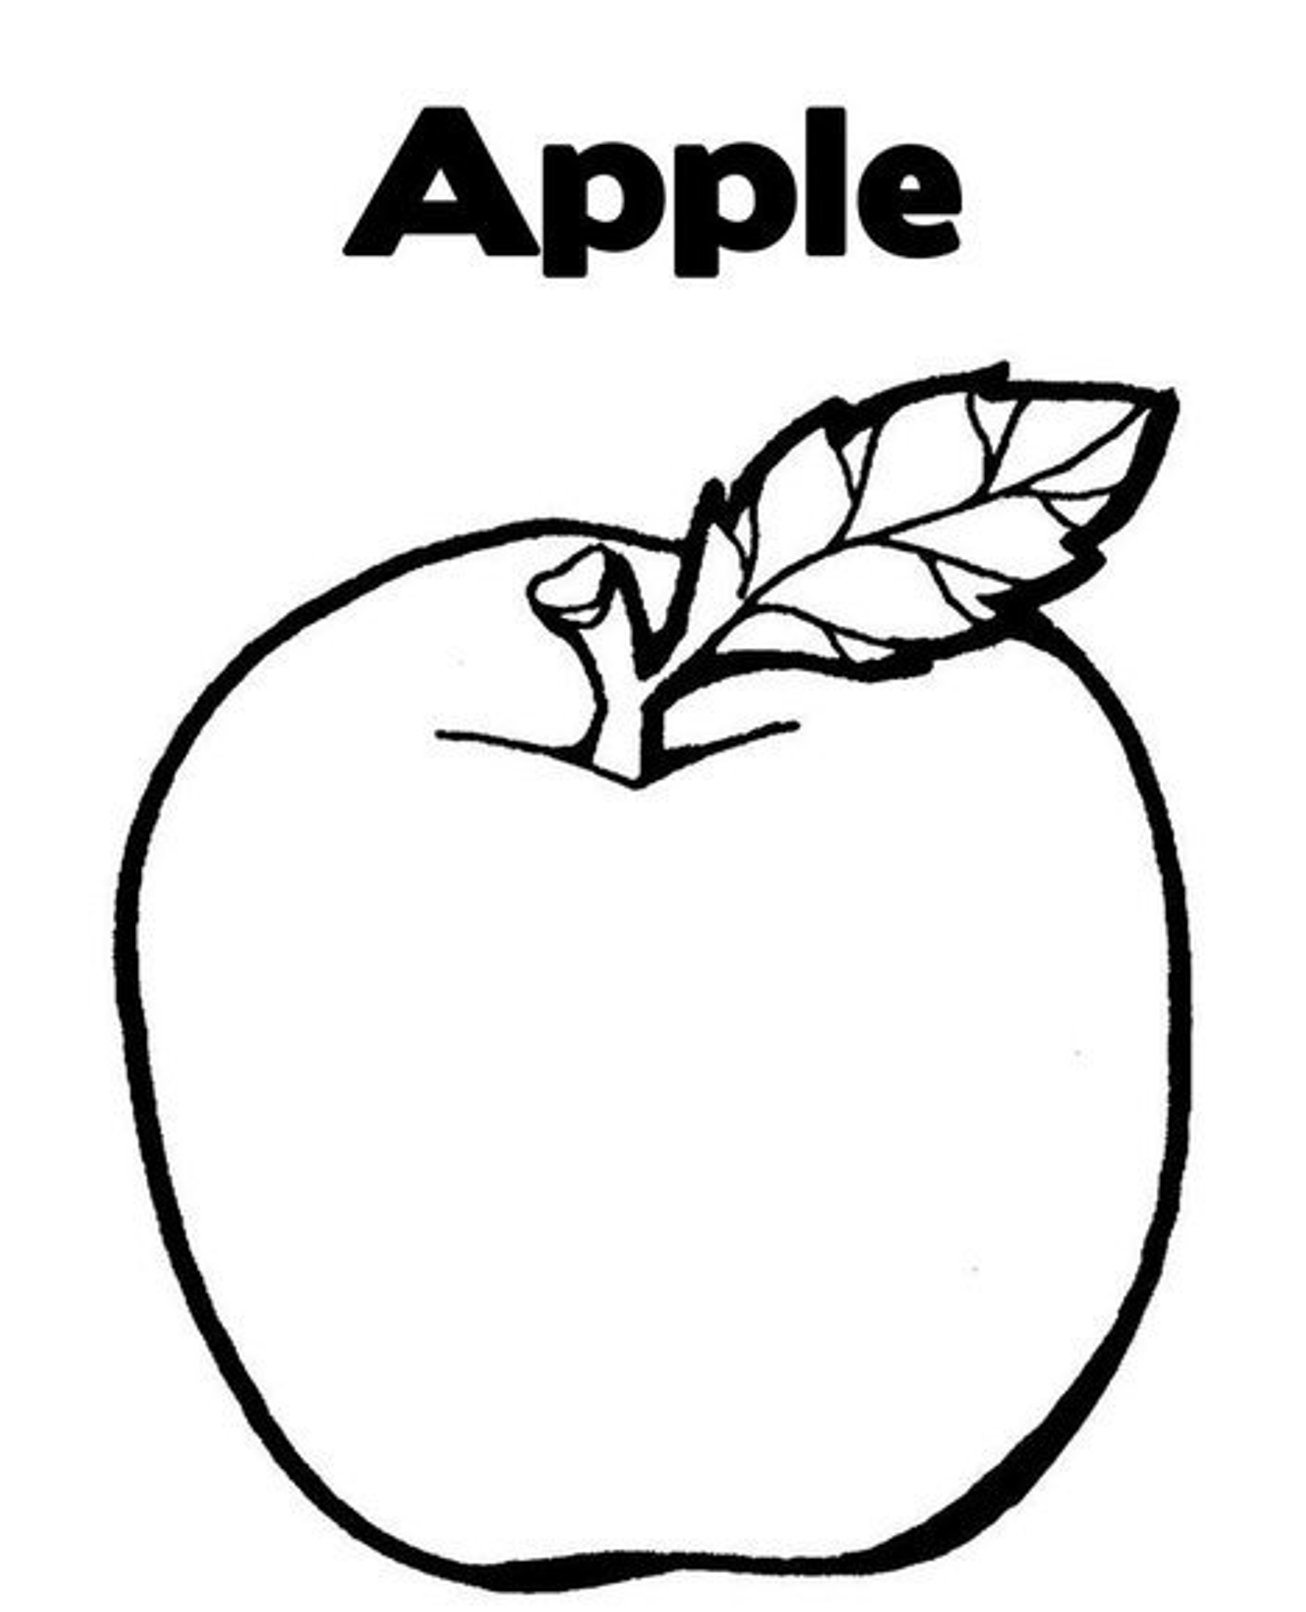 coloring pages apple apple coloring page free printable coloring pages apple pages coloring